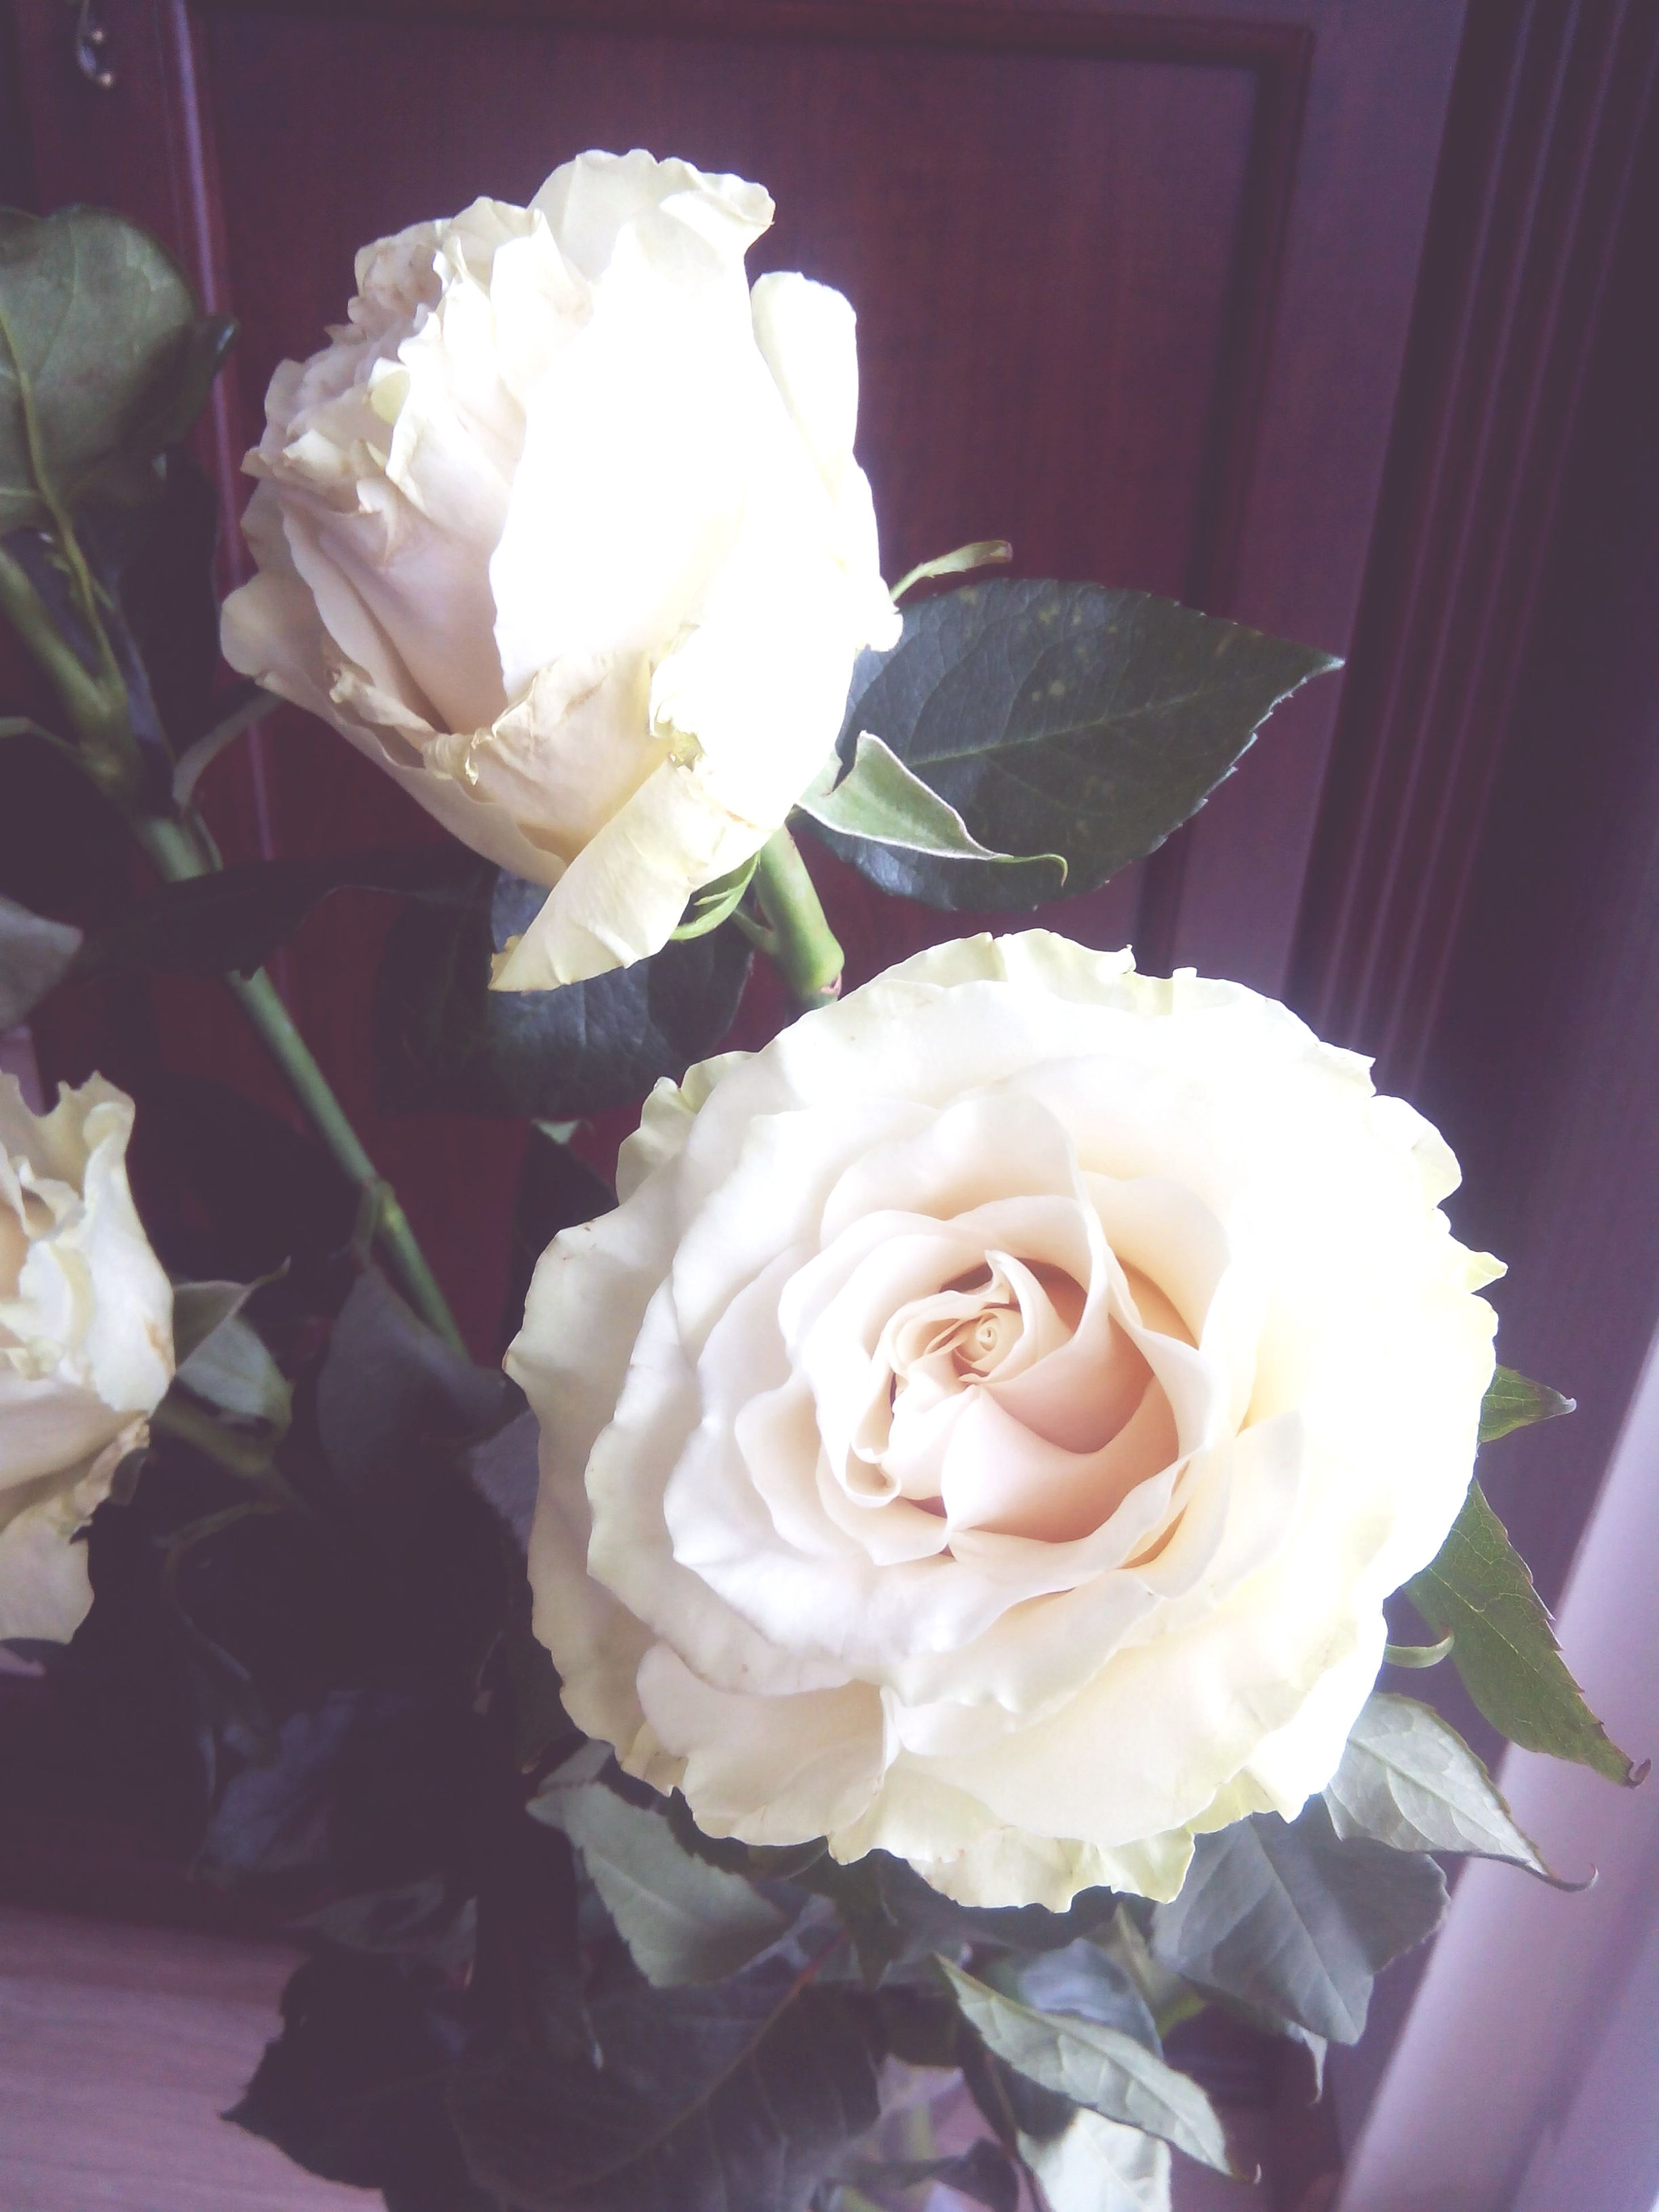 flower, rose - flower, petal, freshness, flower head, fragility, indoors, rose, beauty in nature, white color, close-up, vase, bouquet, pink color, blooming, nature, high angle view, no people, decoration, bunch of flowers